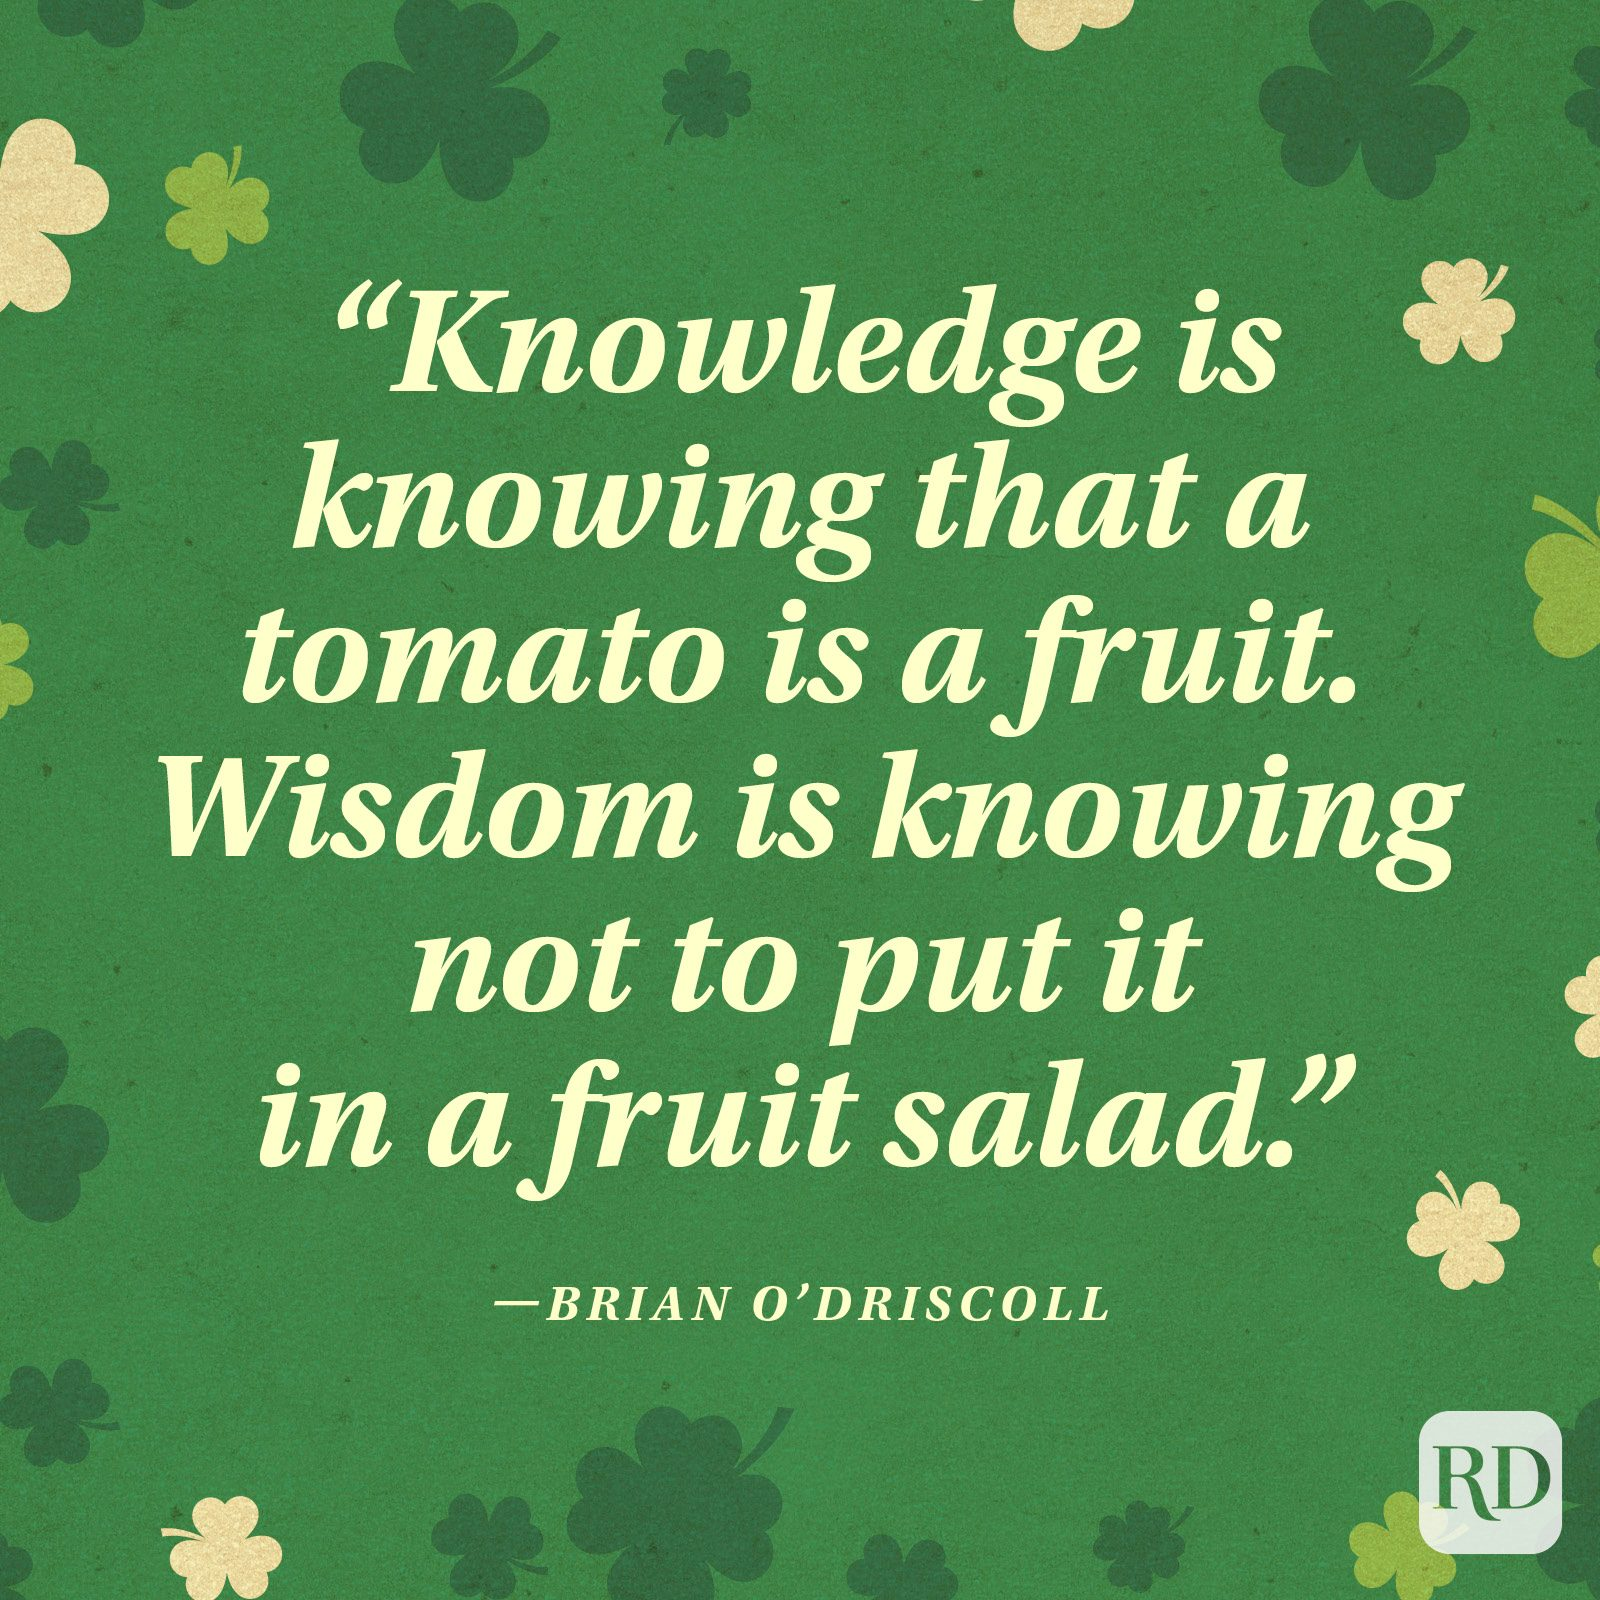 """Knowledge is knowing that a tomato is a fruit. Wisdom is knowing not to put it in a fruit salad."" —Brian O'Driscoll"